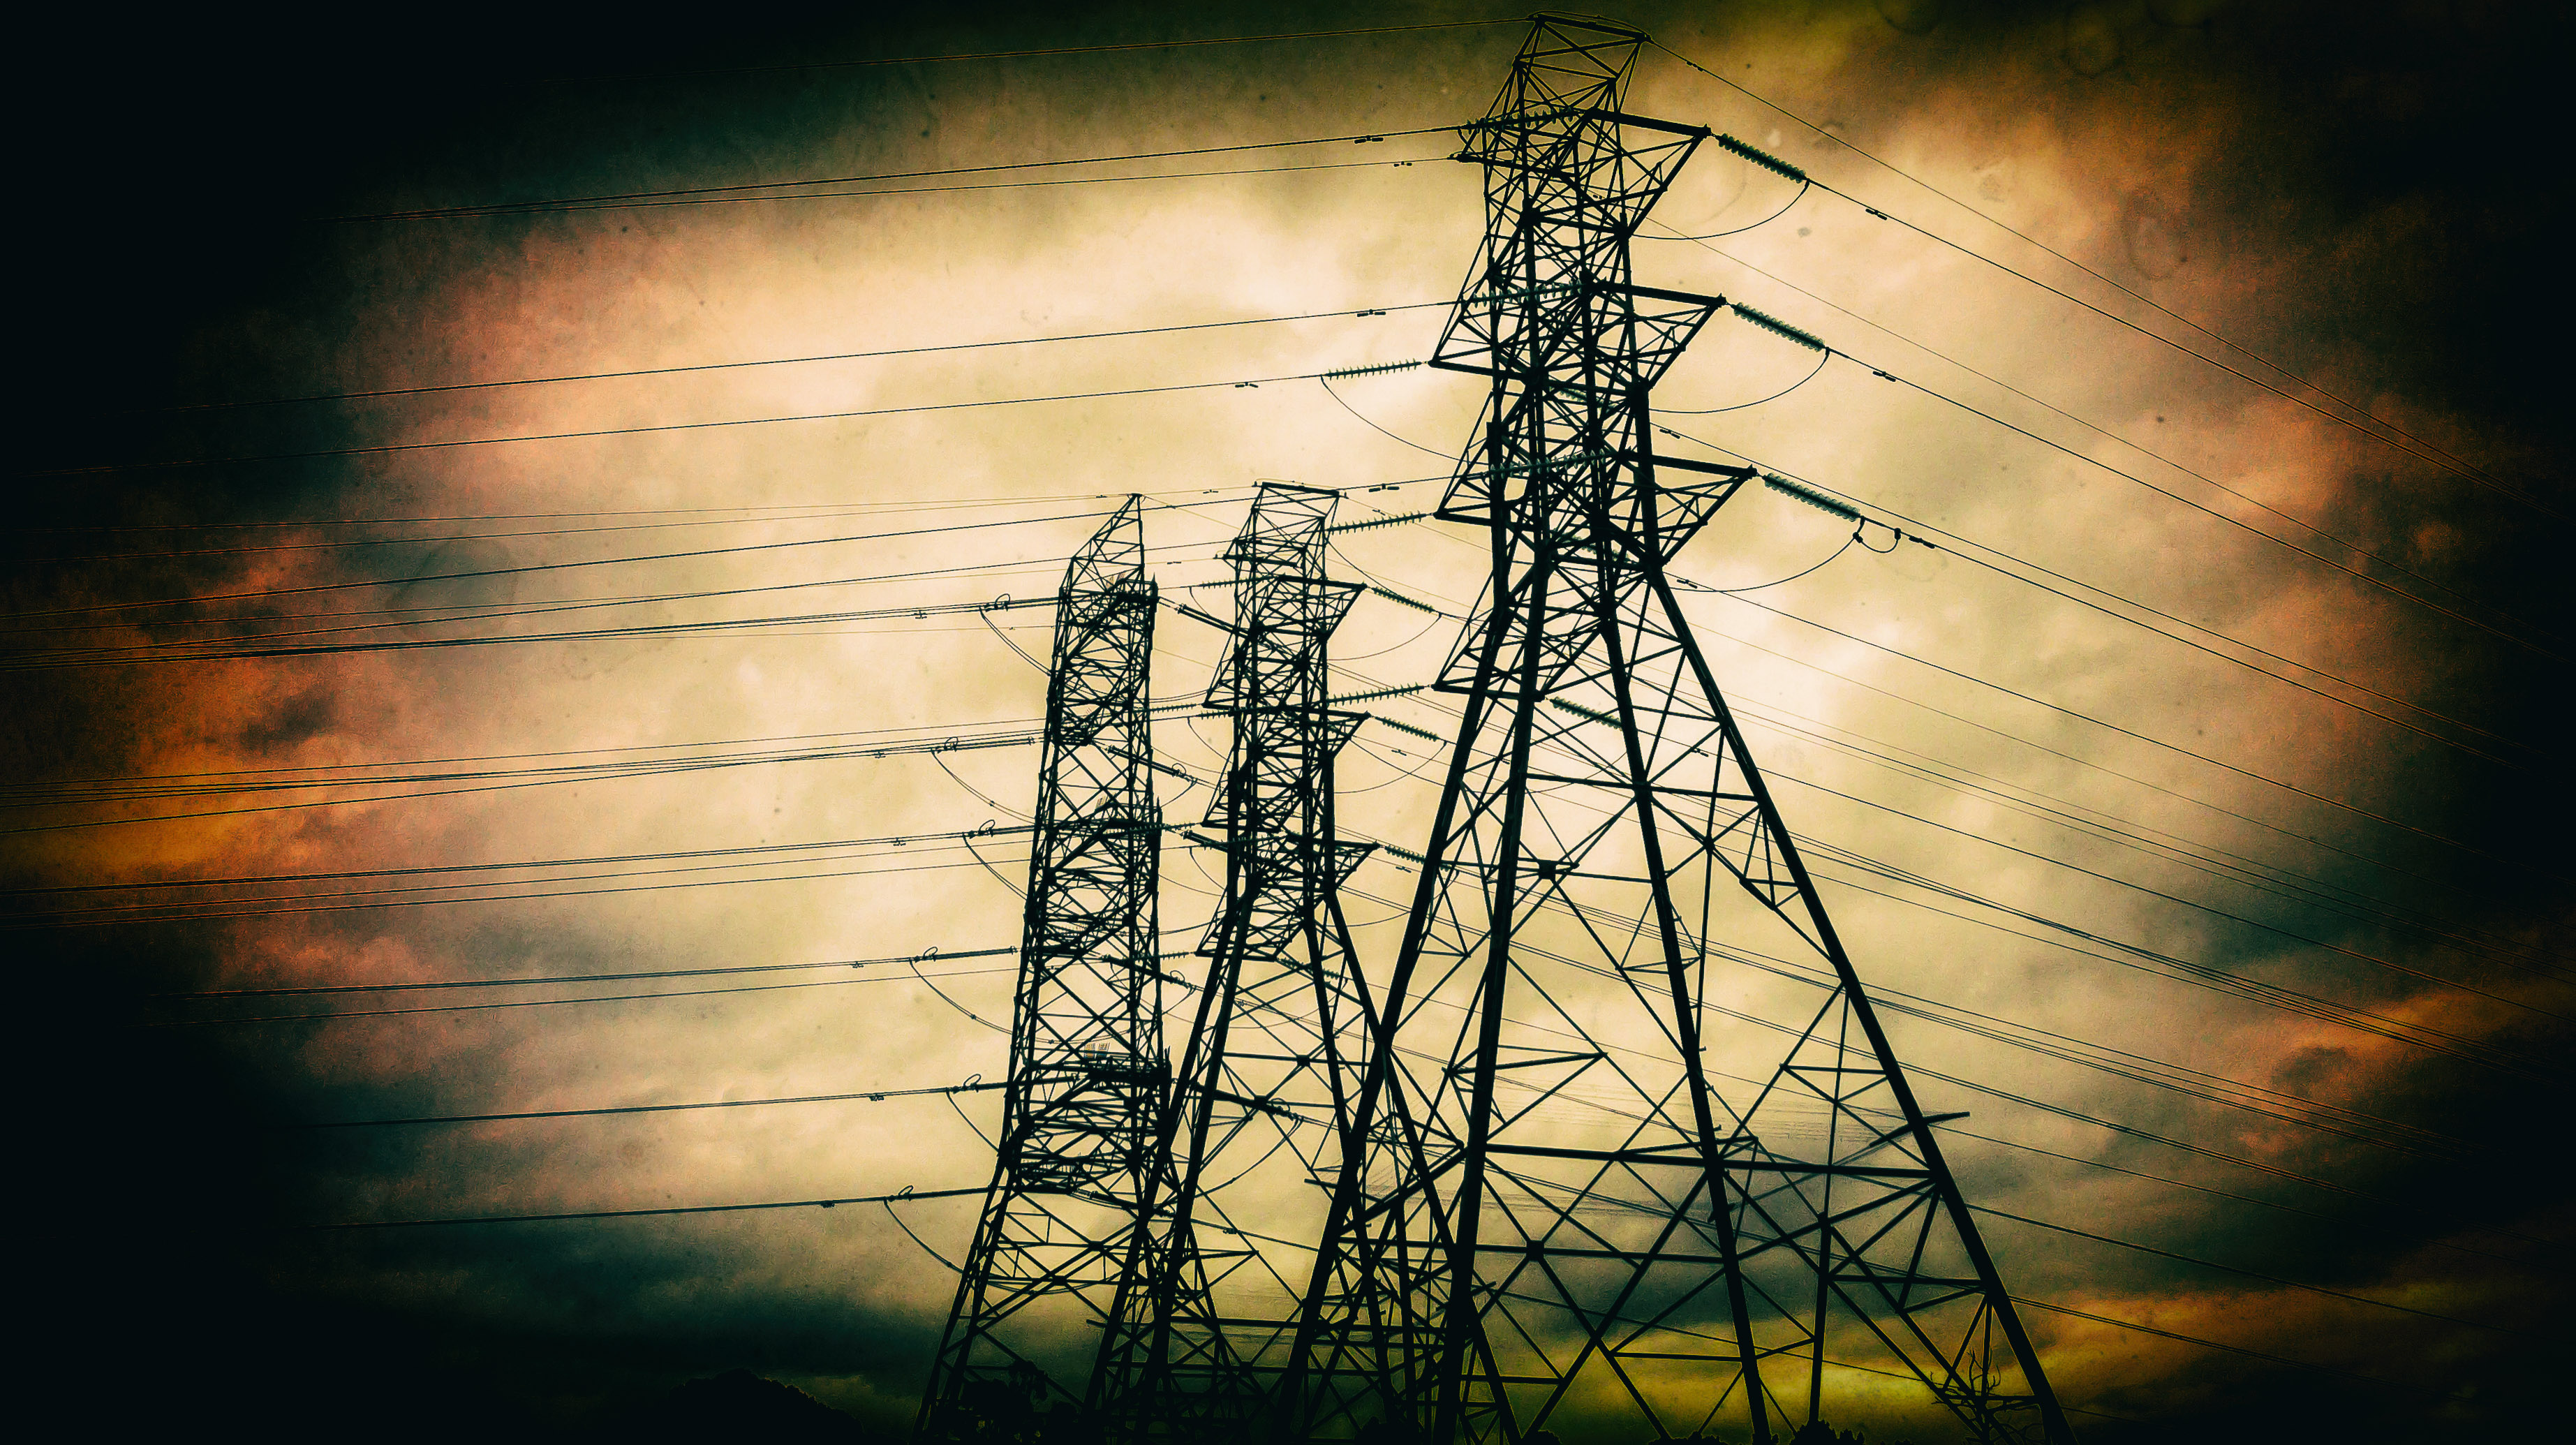 Load shedding escalated to Stage 4 and cuts 'likely' to be extended, warns Eskom